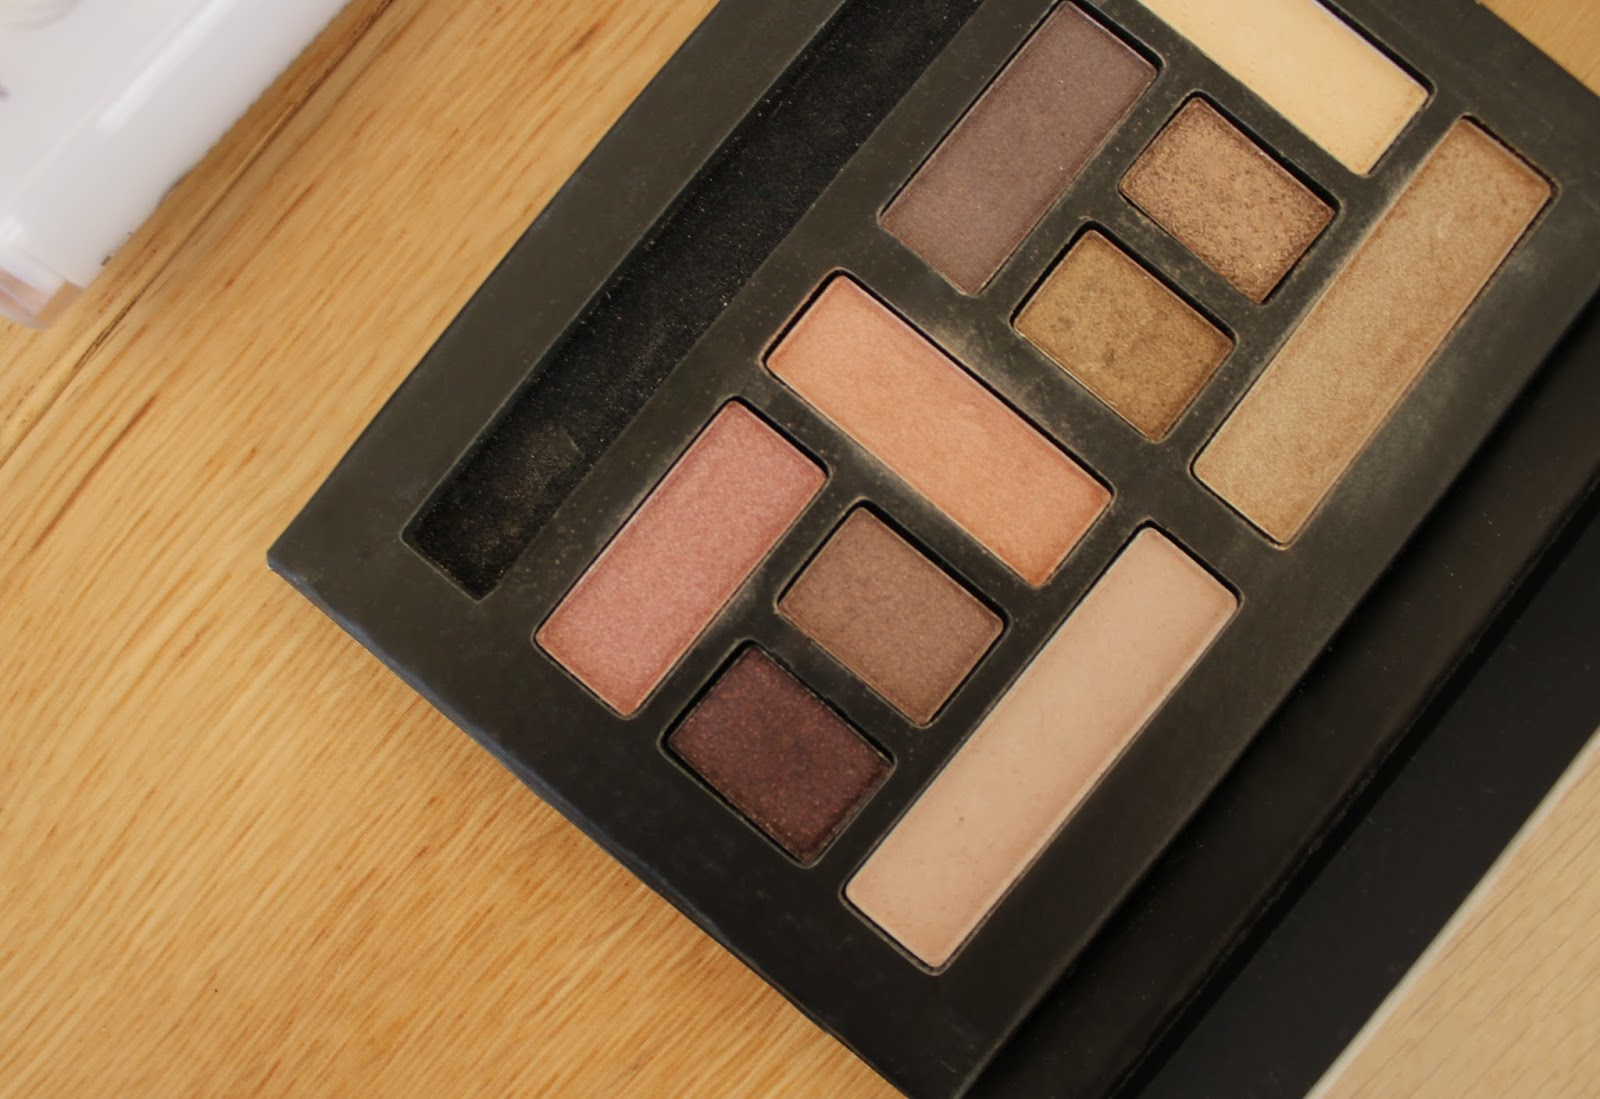 February Favourites - Collection Eyeshadow Palette in #YourStyleYourMood